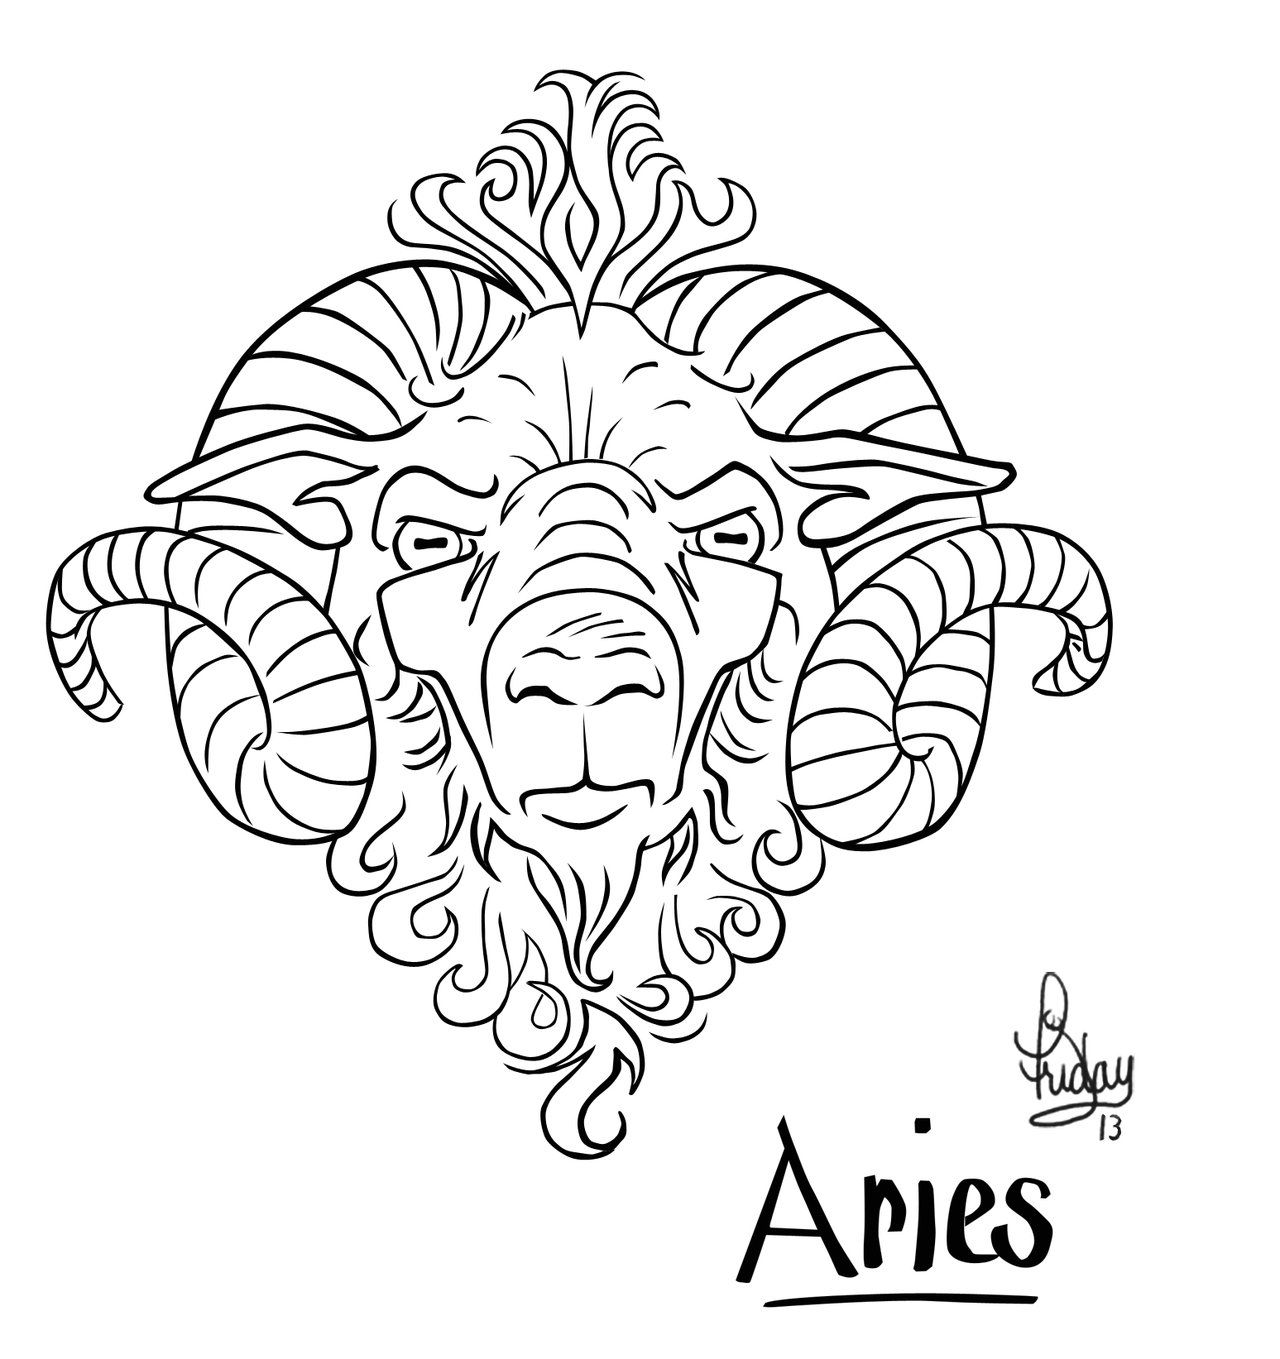 aries tattoo ram fire Google Search my reference